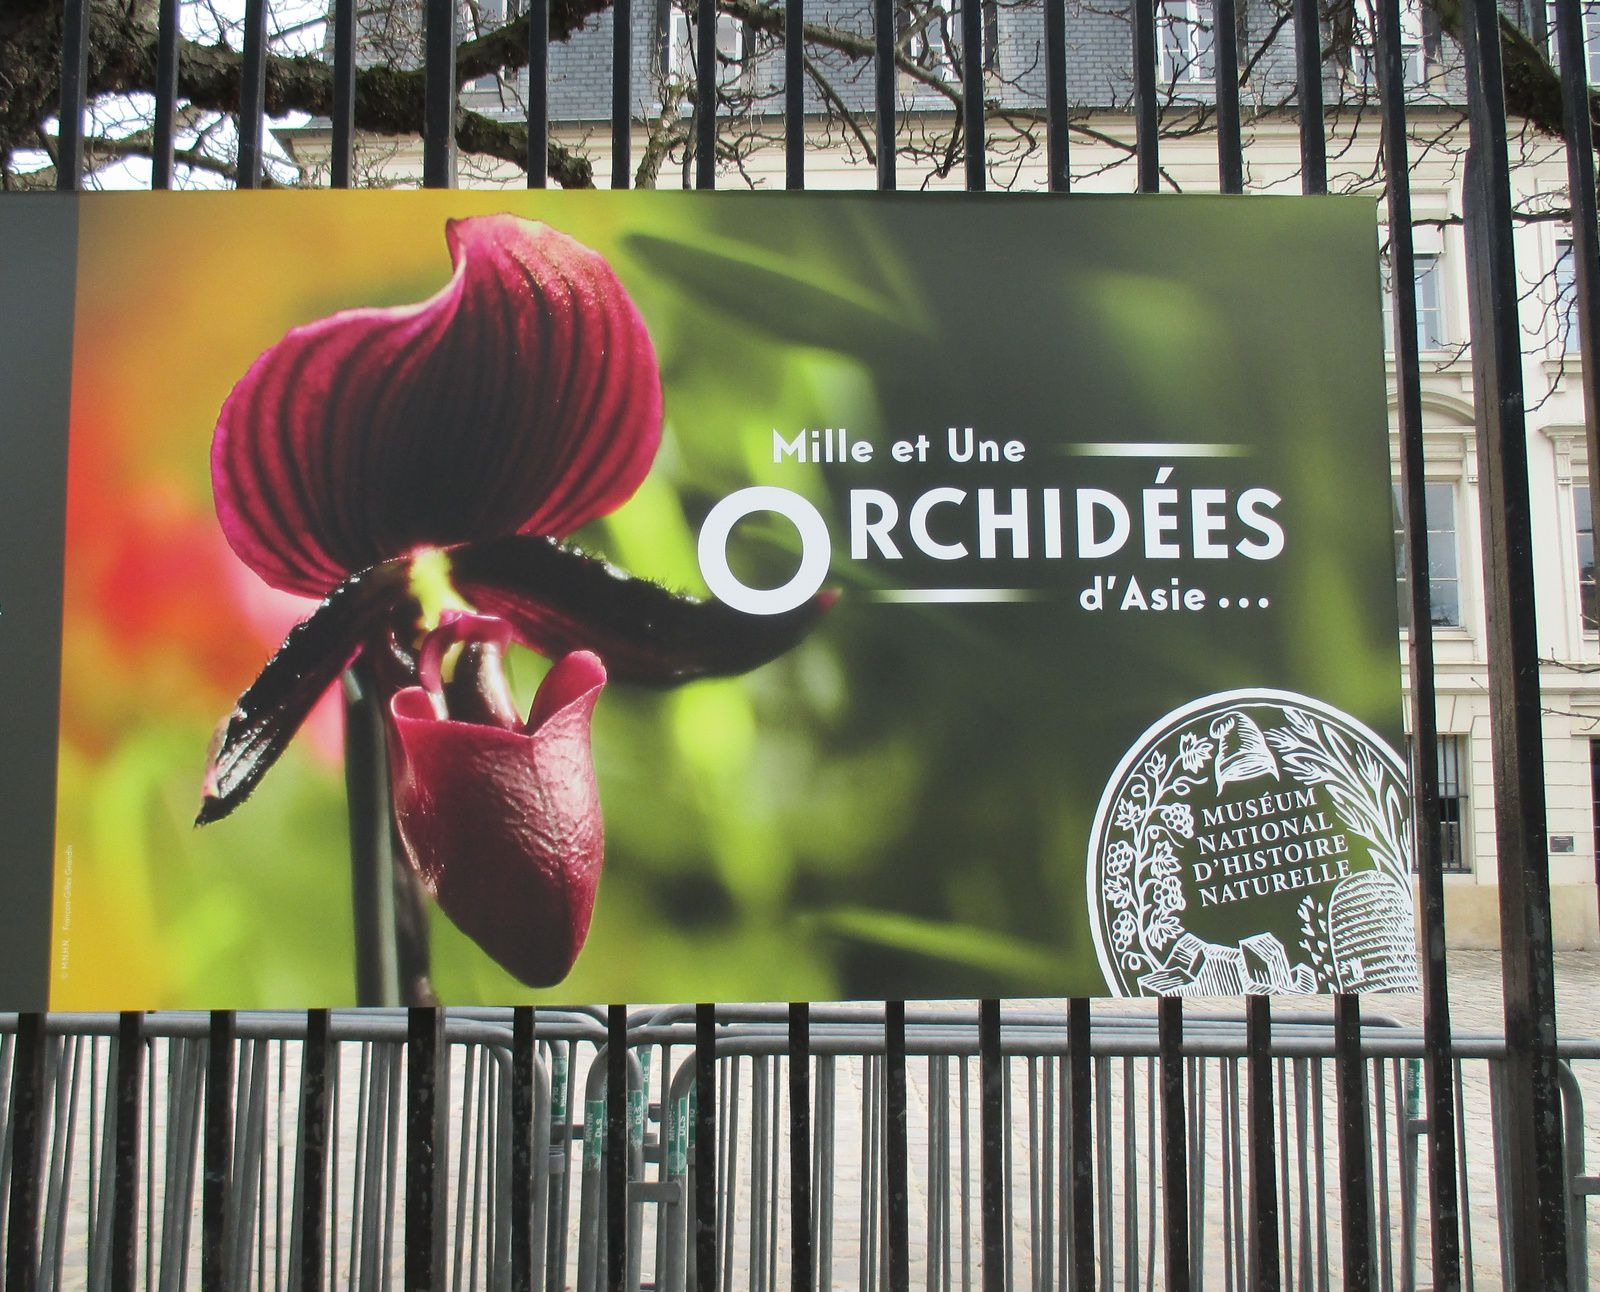 ORCHIDEES d'ASIE